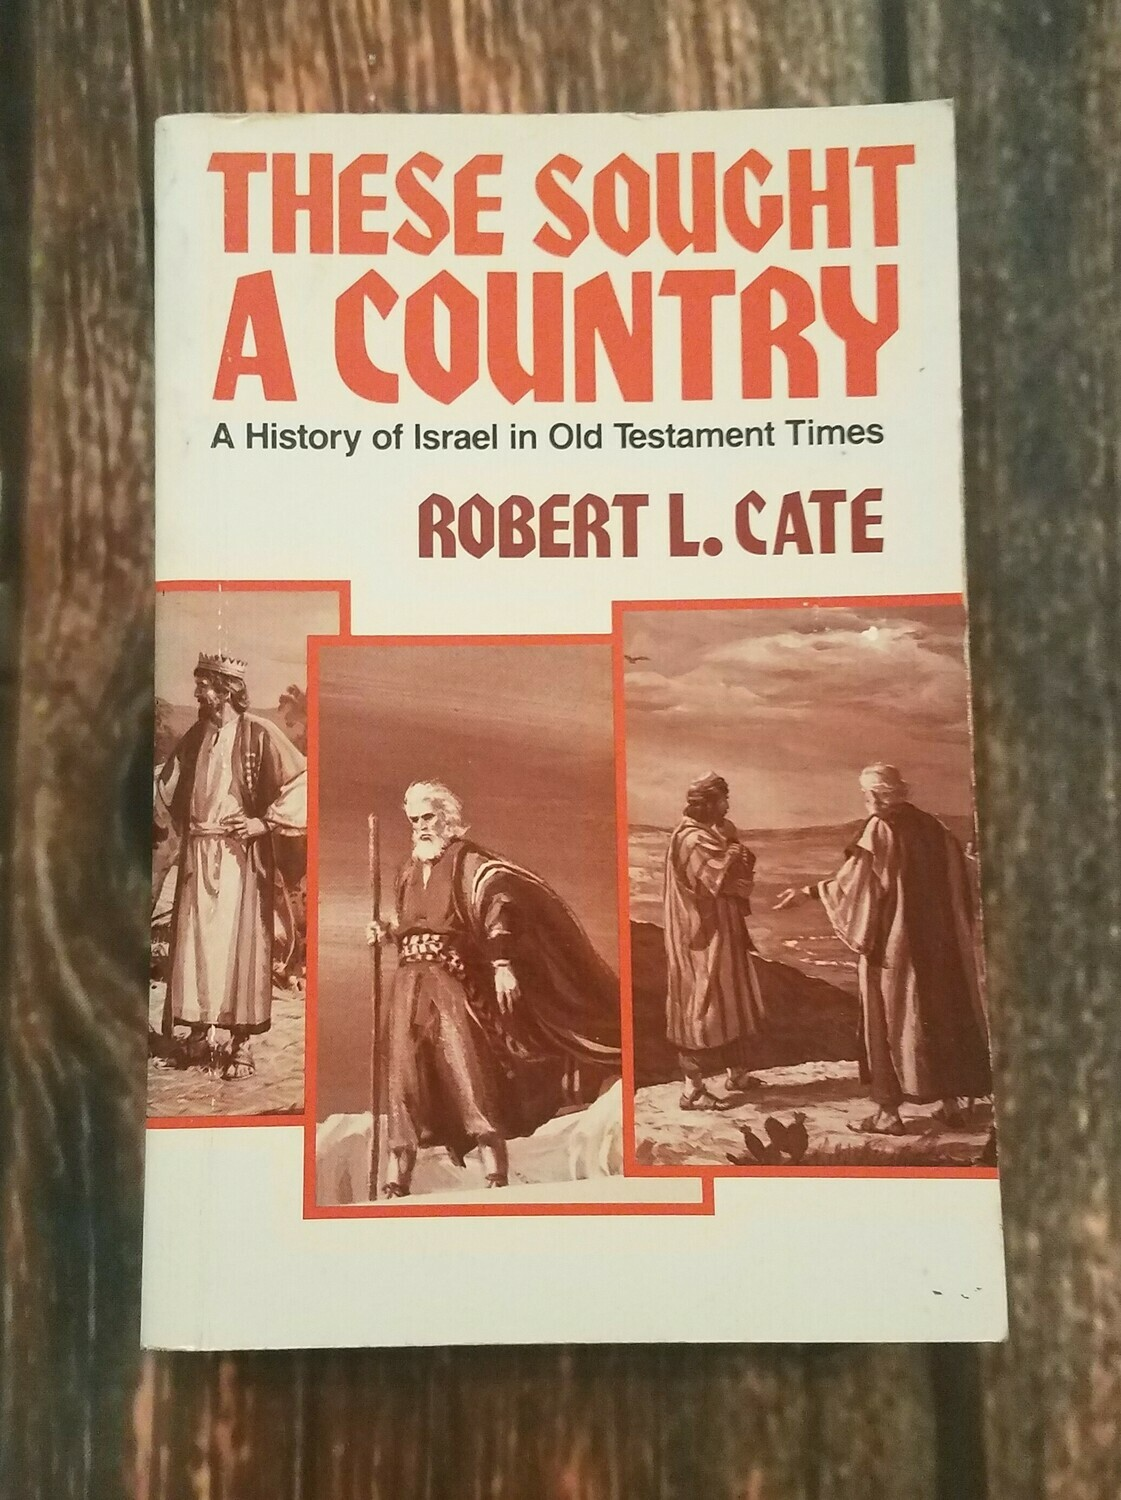 These Sought a Country by Robert L. Cate